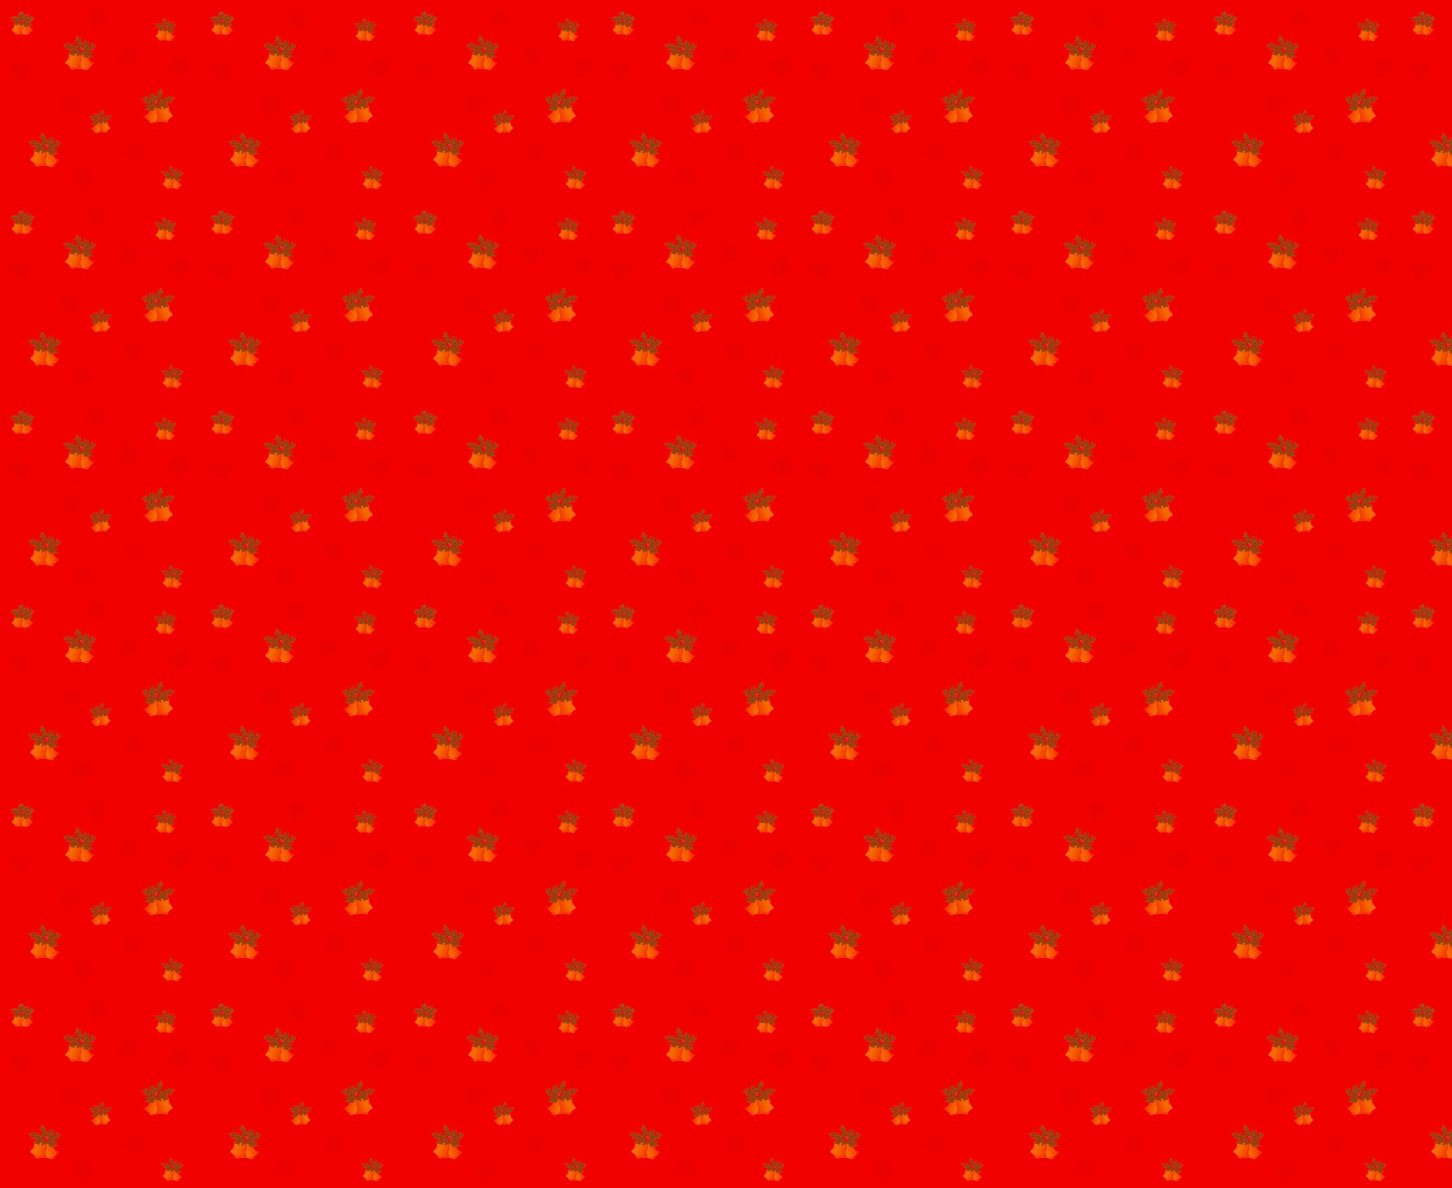 Christmas Red Background Wallpaper For Scrapbooking Coloring 1452x1188